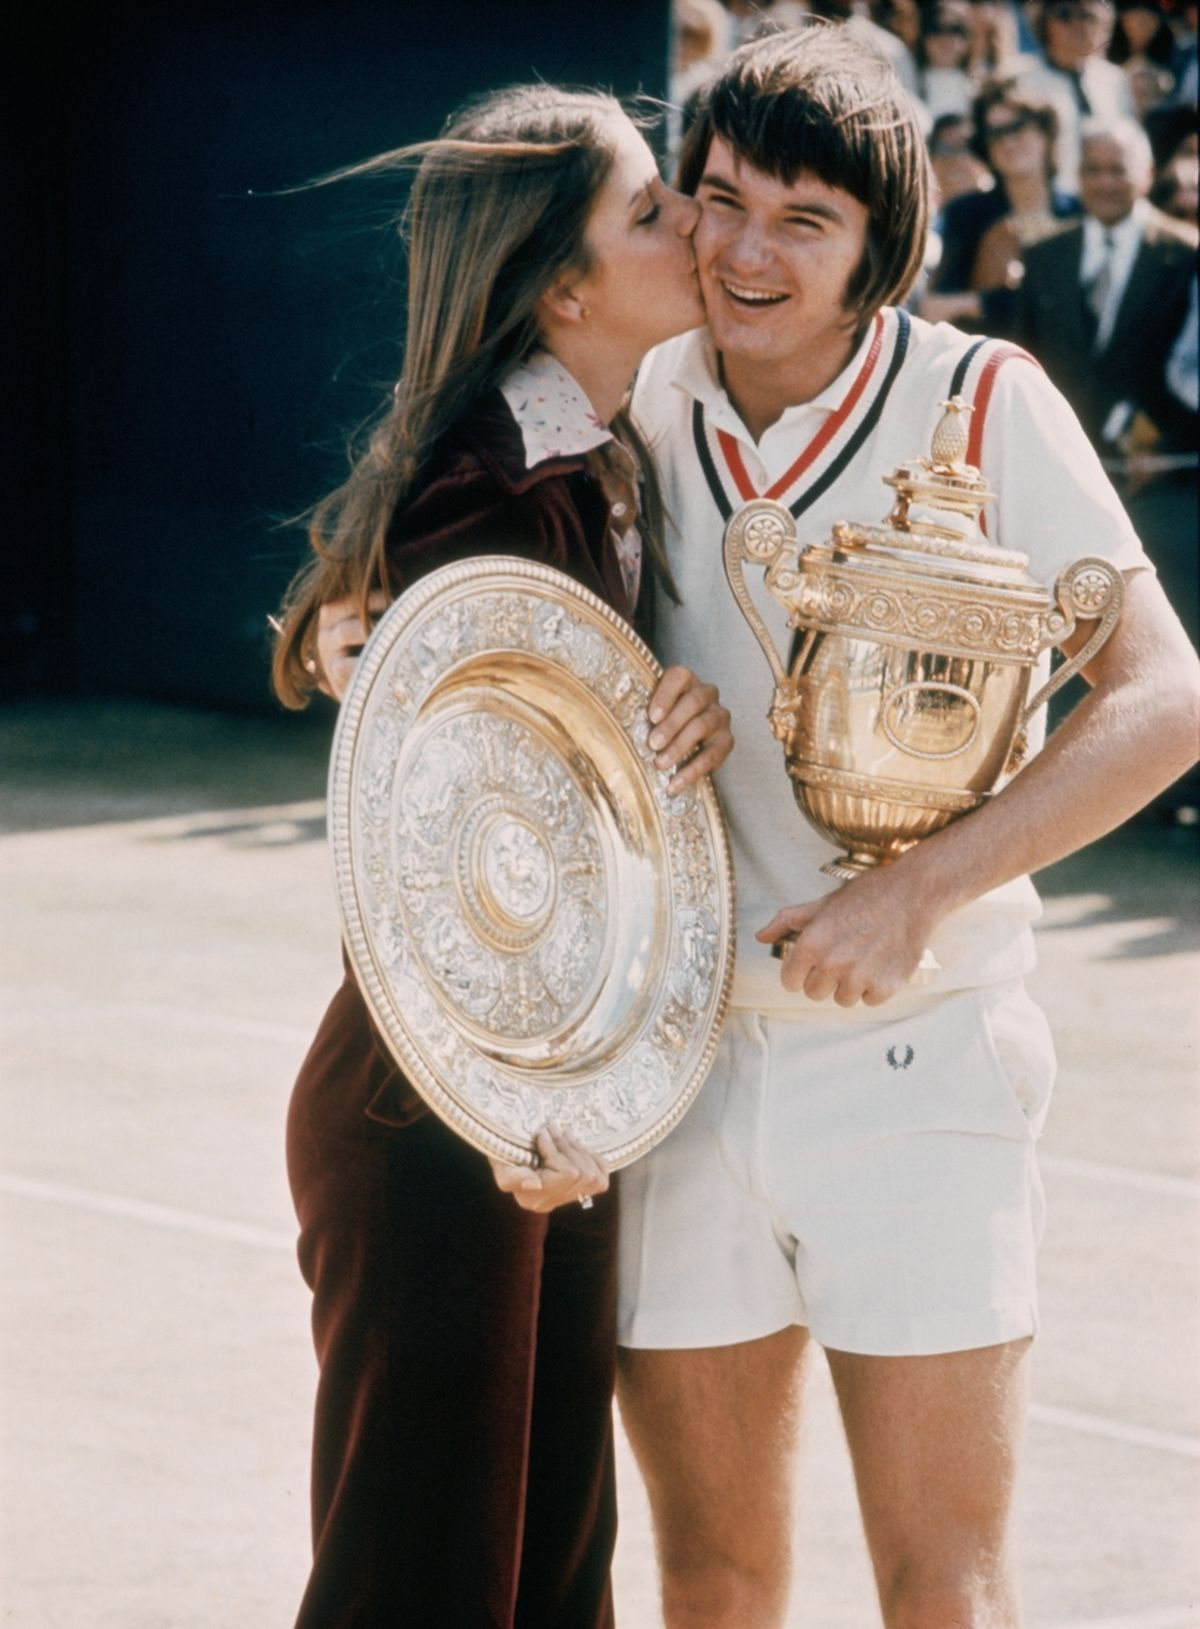 Jimmy Connors Youthful Passion Left Chris Evert Pregnant With Our Love Child But The Timing Was Bad For Her Tennis Future Jimmy Connors Chris Evert Wimbledon Champions